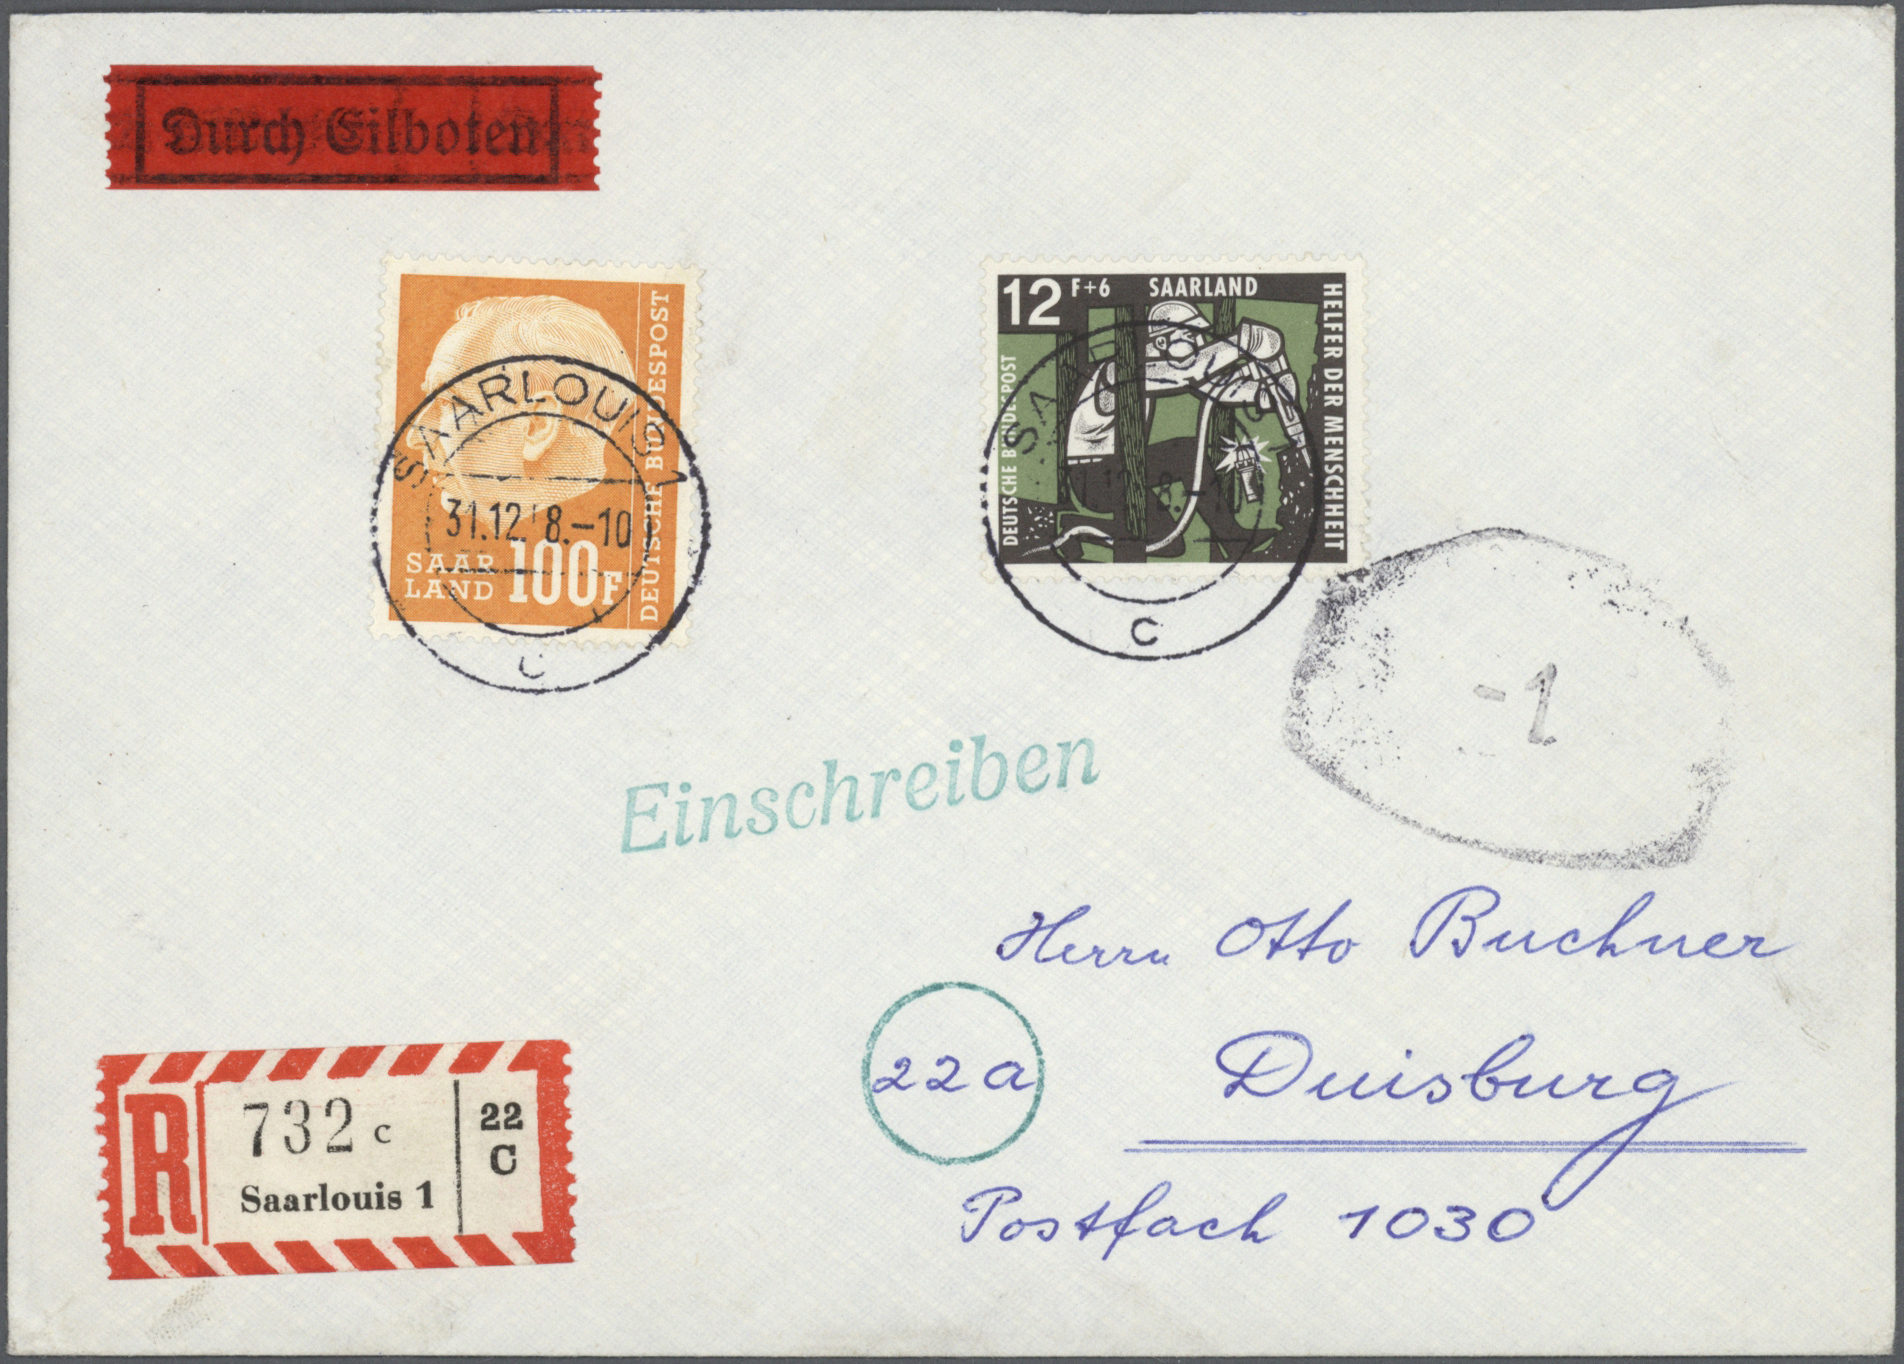 Lot 38283 - Saarland (1947/56)  -  Auktionshaus Christoph Gärtner GmbH & Co. KG Collections Germany,  Collections Supplement, Surprise boxes #39 Day 7